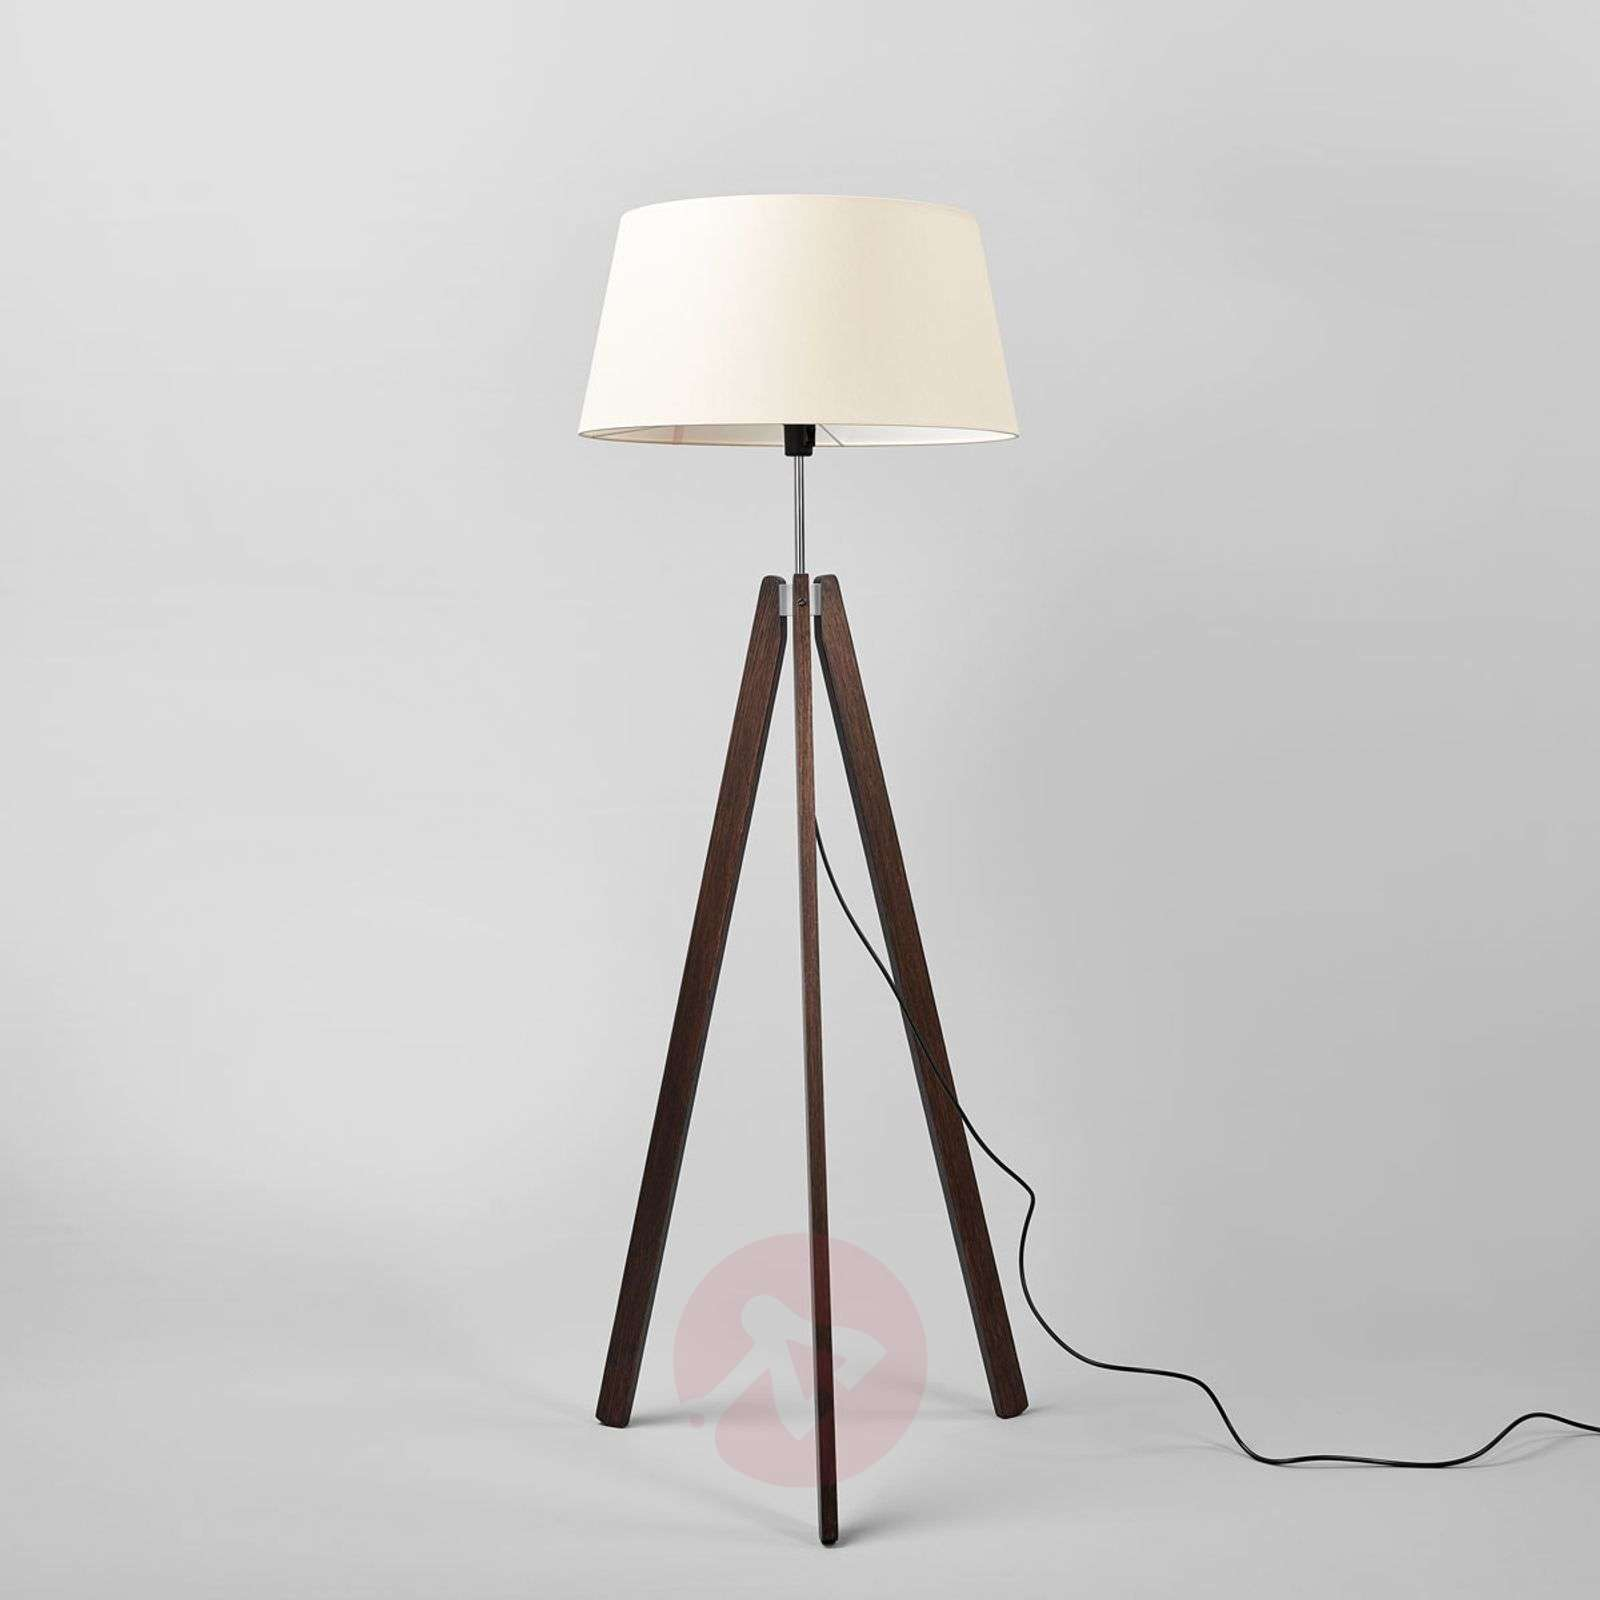 Thea wooden floor lamp w. champagne-coloured shade-6722432-01